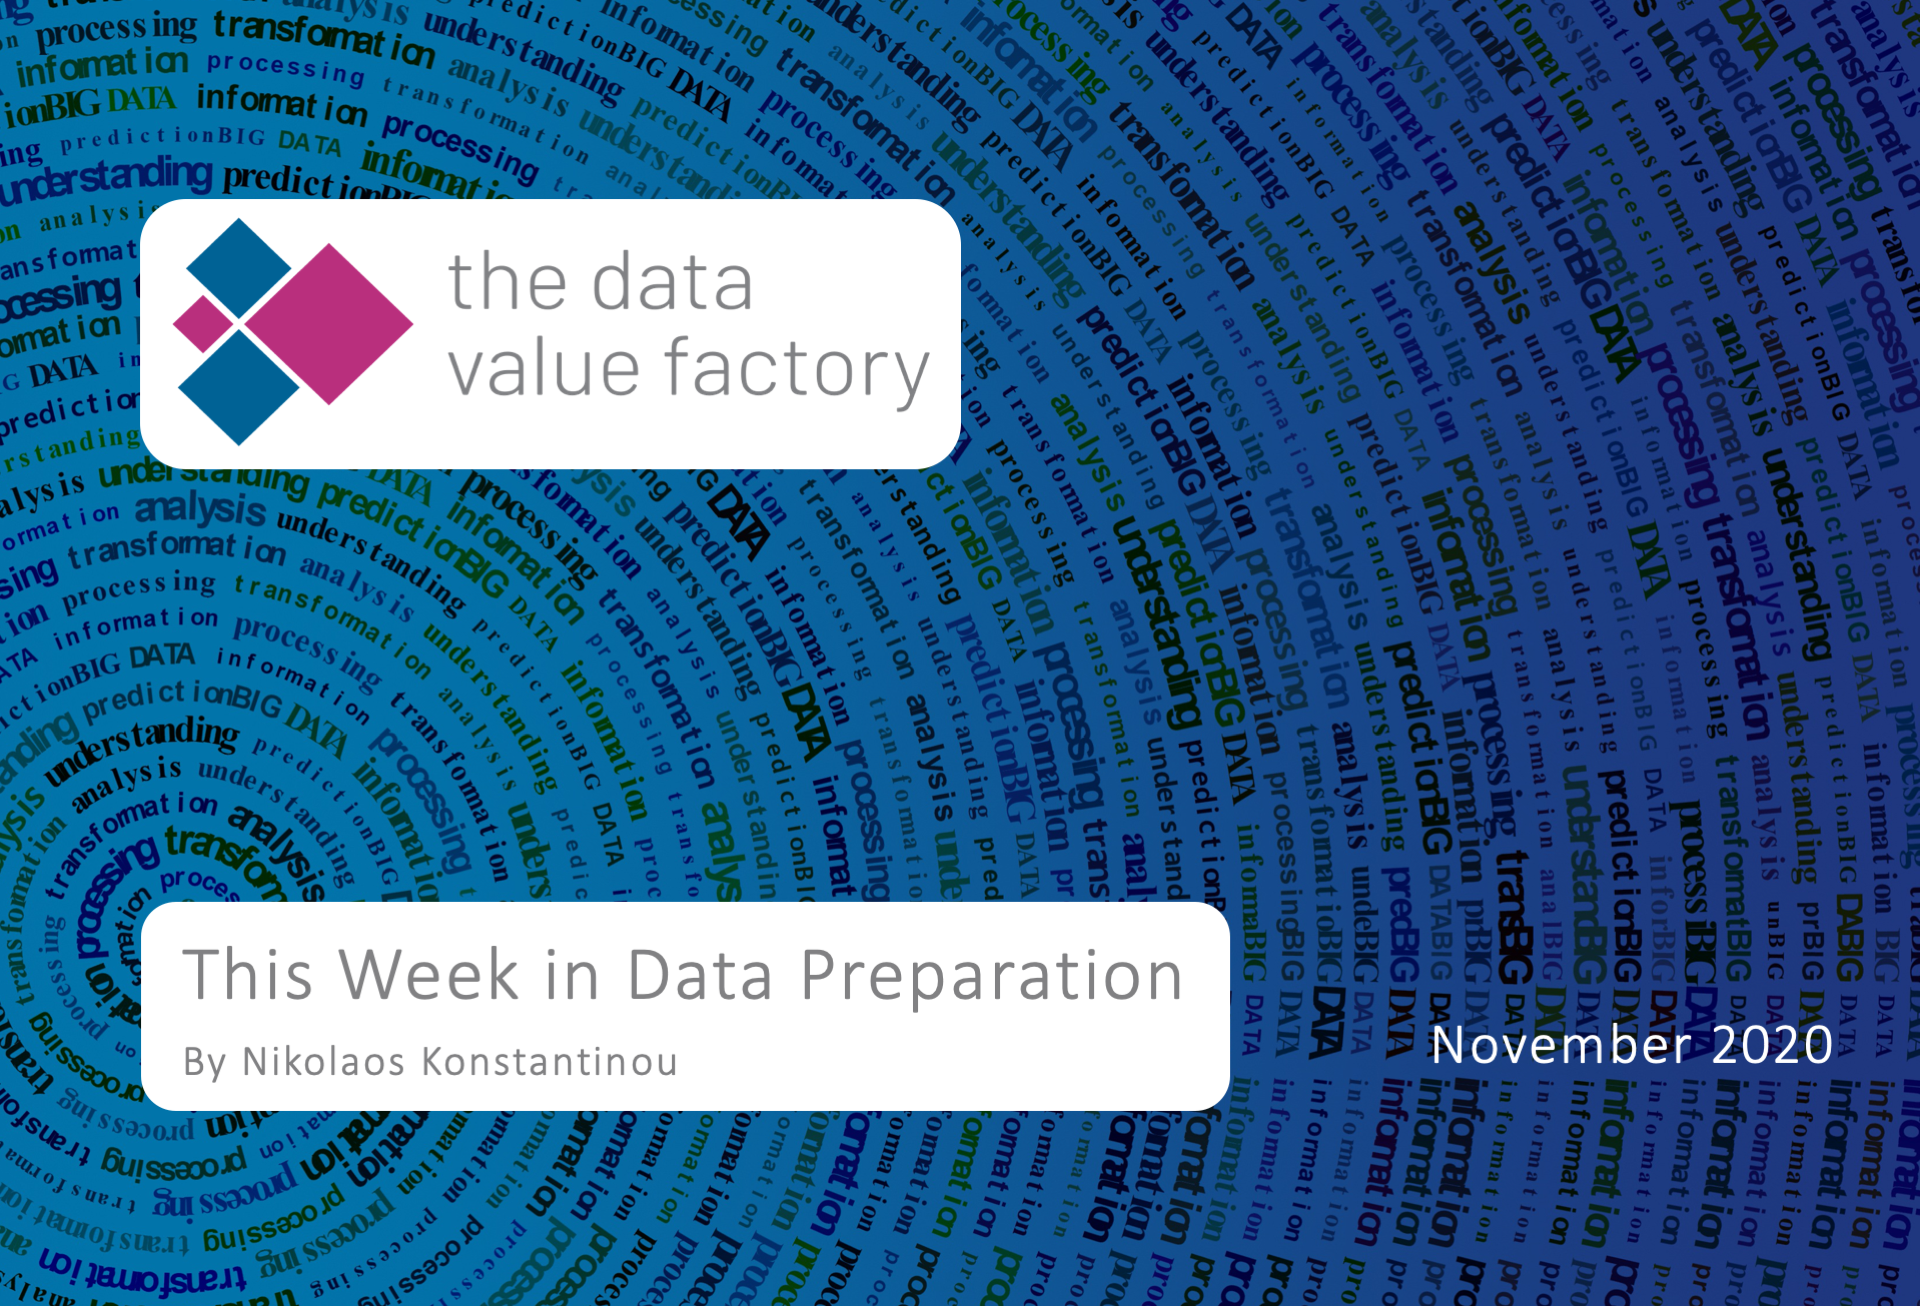 This week in data preparation—A weekly post by The Data Value Factory, with news items from the data preparation market.